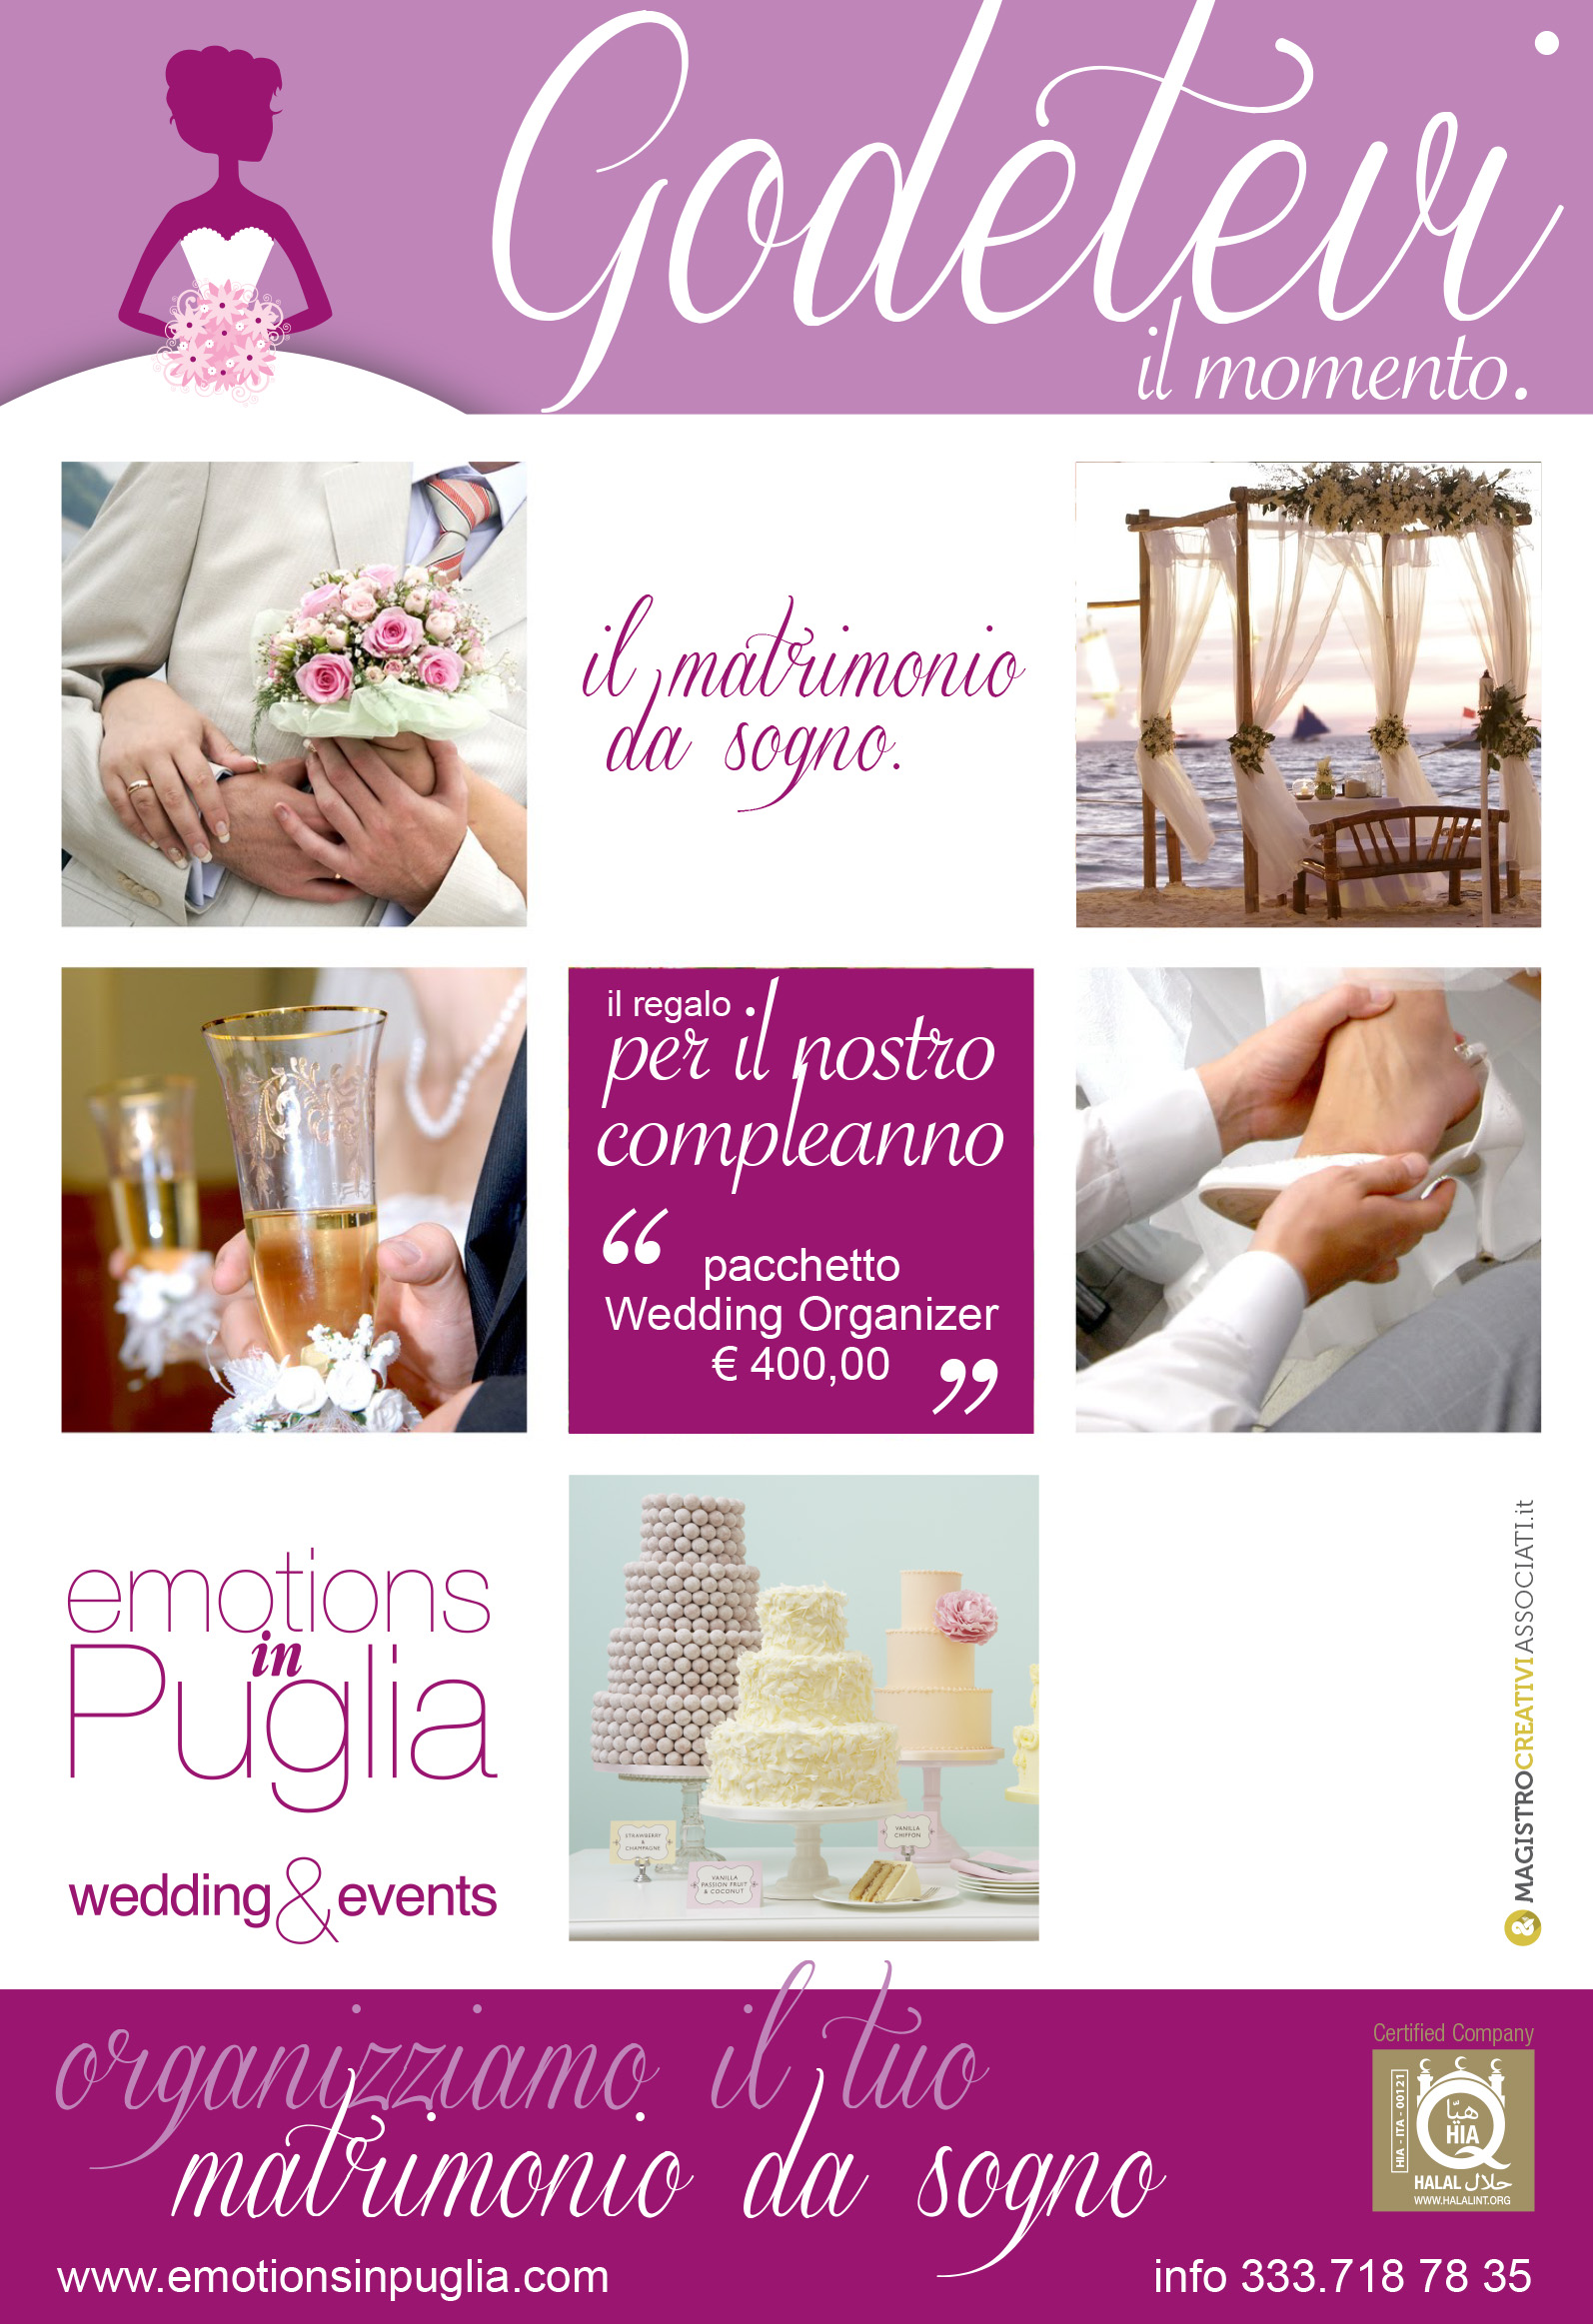 Emotions in puglia brochure